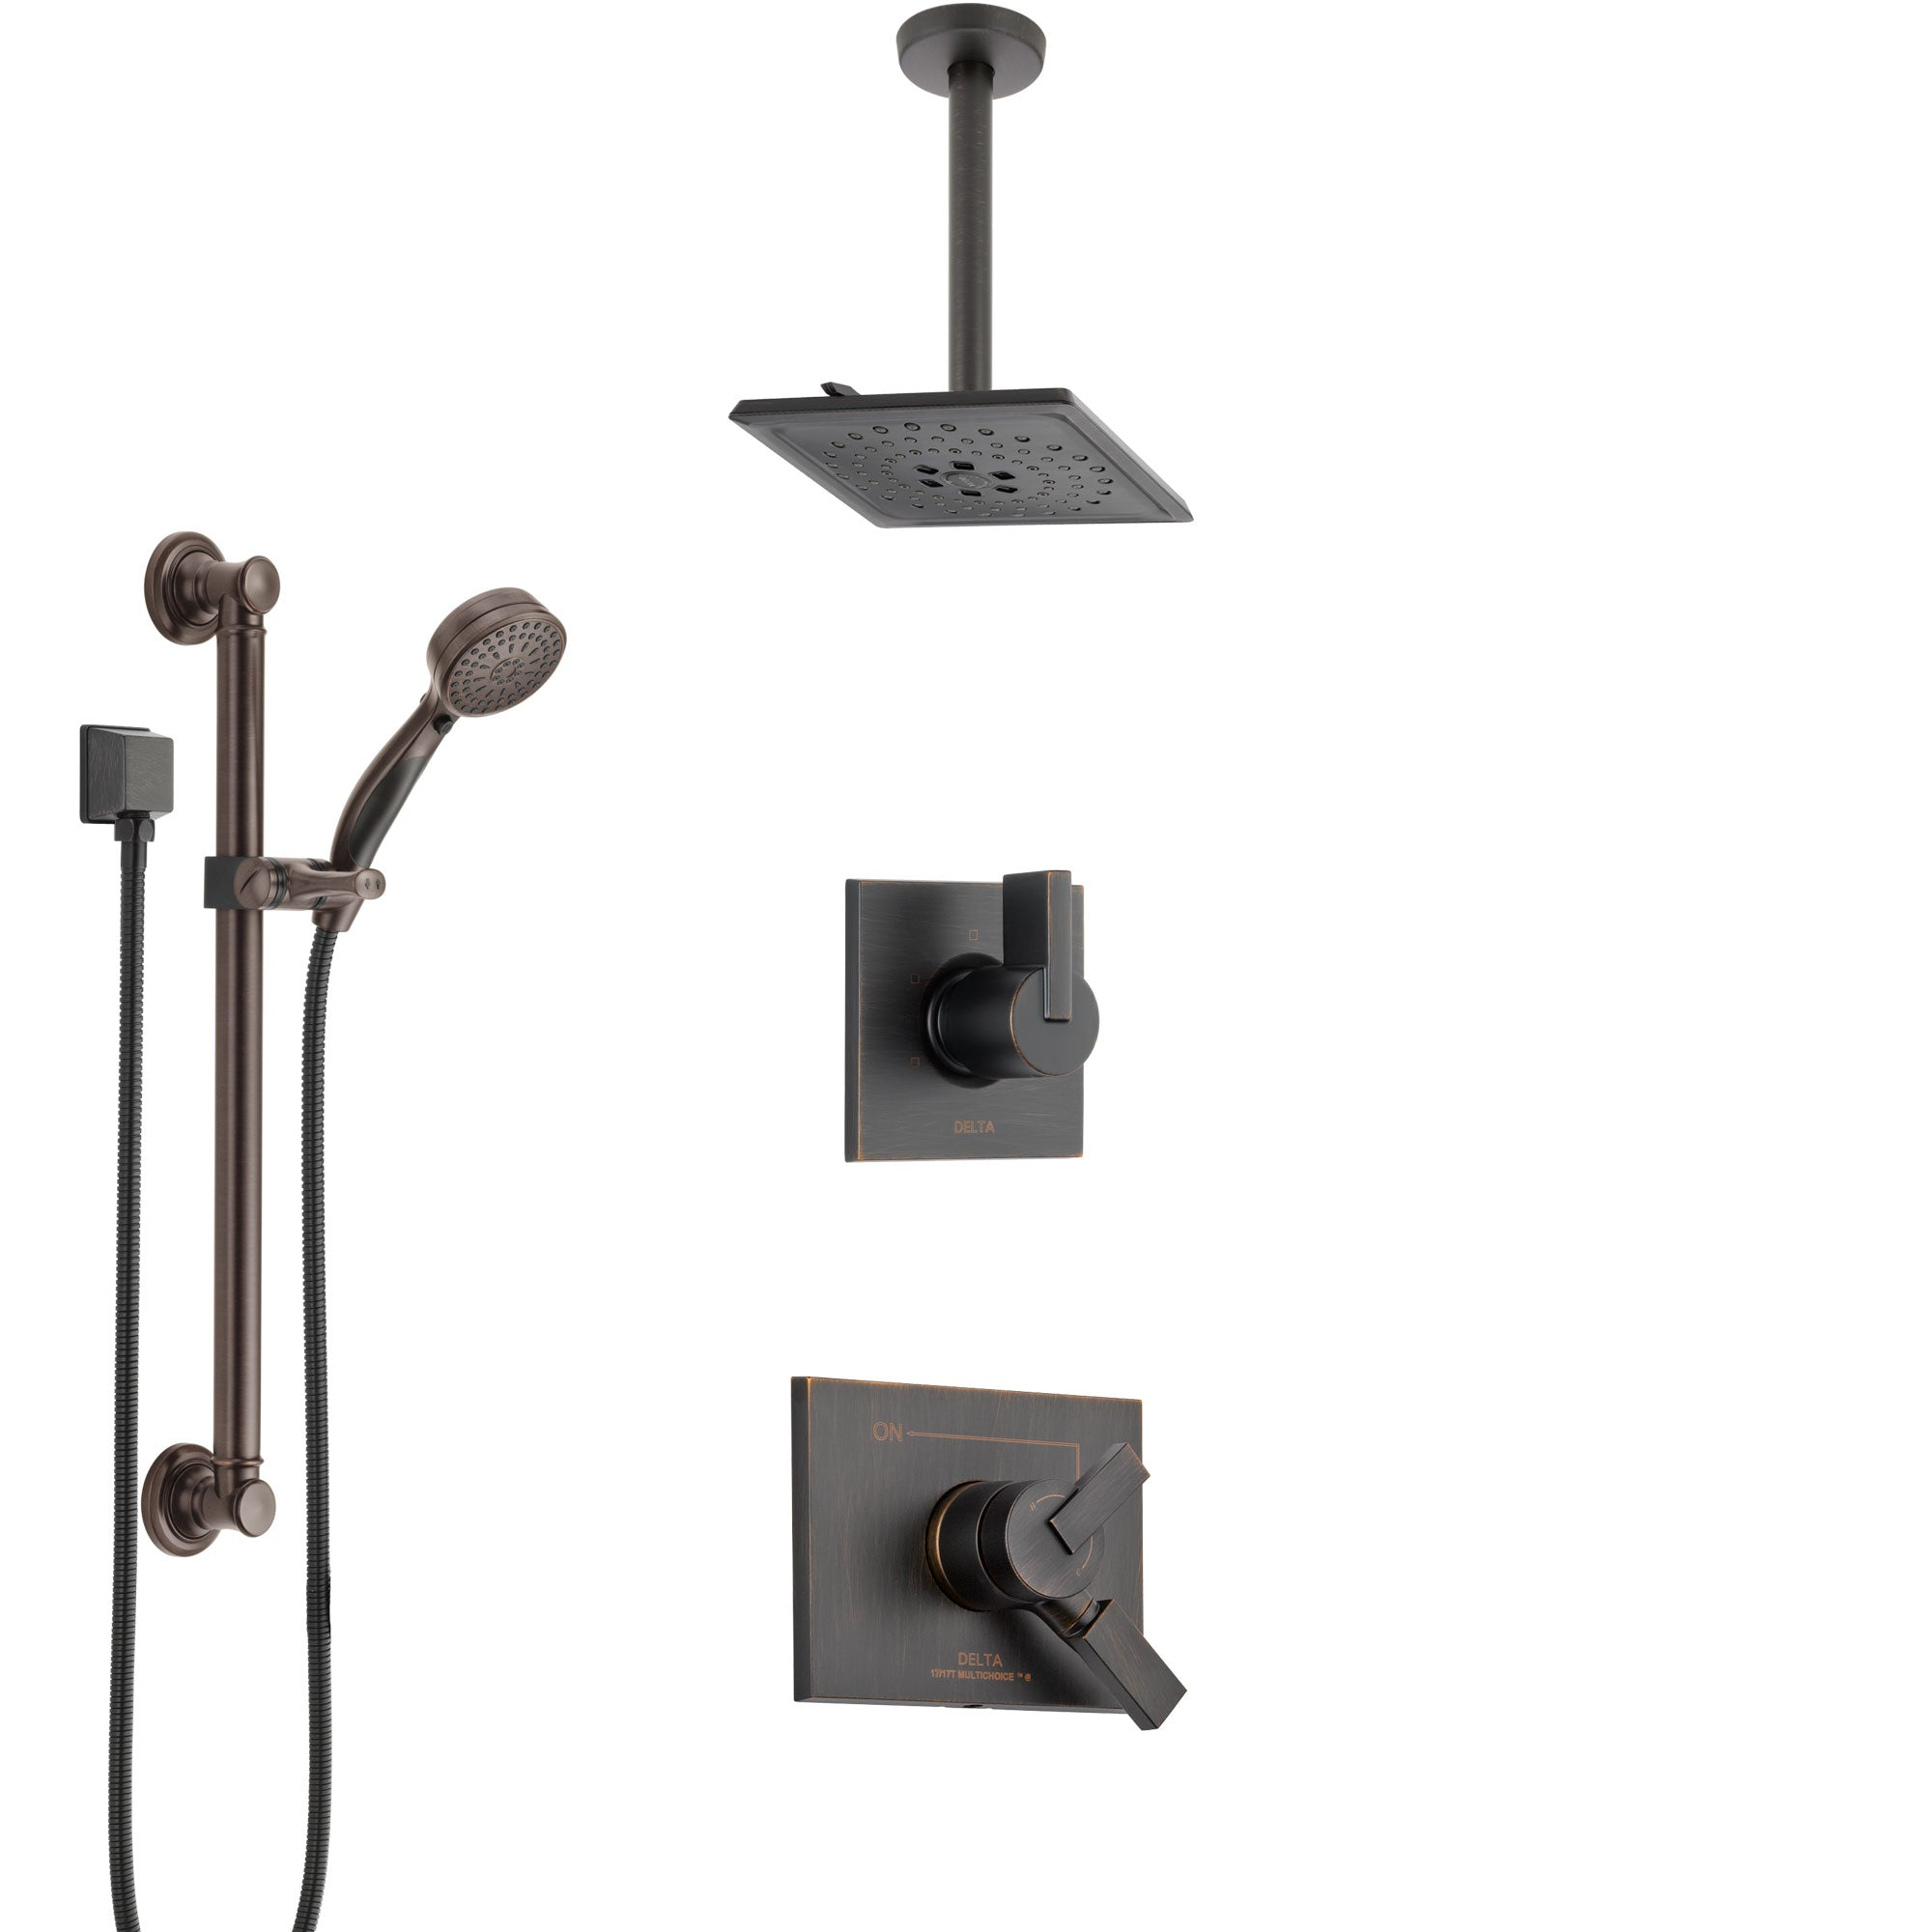 Delta Vero Venetian Bronze Shower System with Dual Control Handle, Diverter, Ceiling Mount Showerhead, and Hand Shower with Grab Bar SS1753RB2